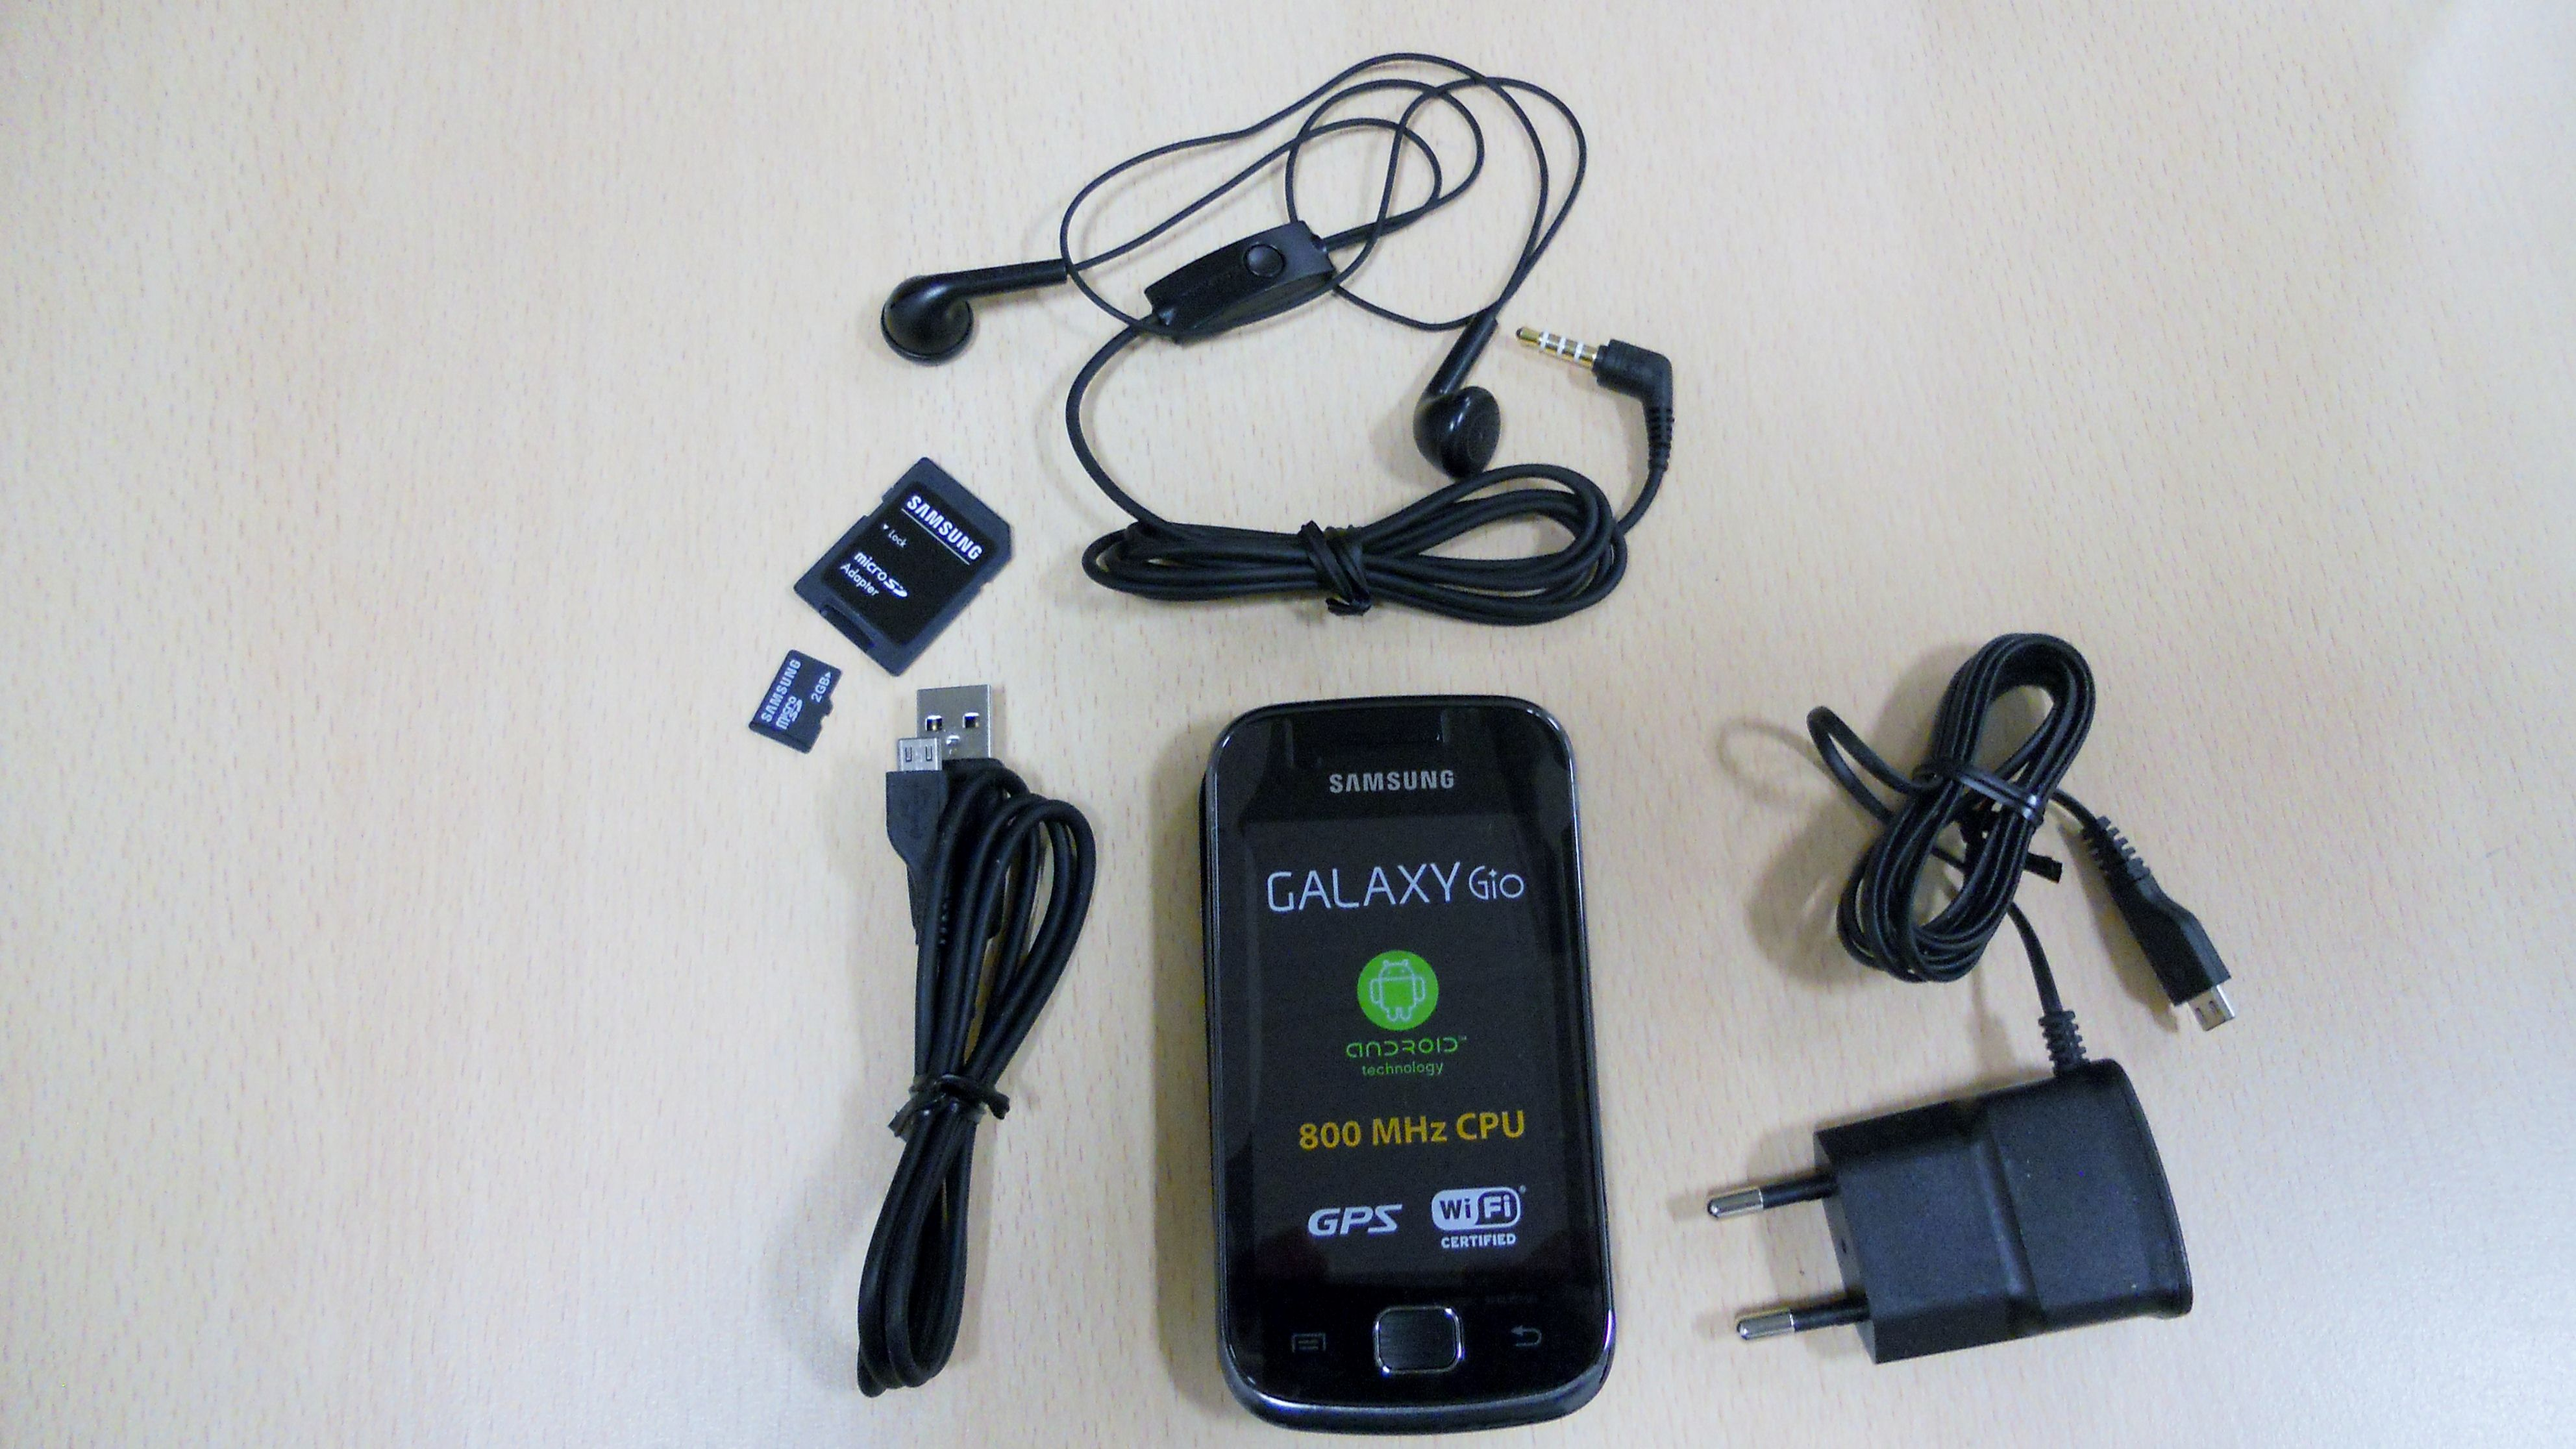 Samsung Galaxy Gio S5660 unboxing photos   WishMesh EE